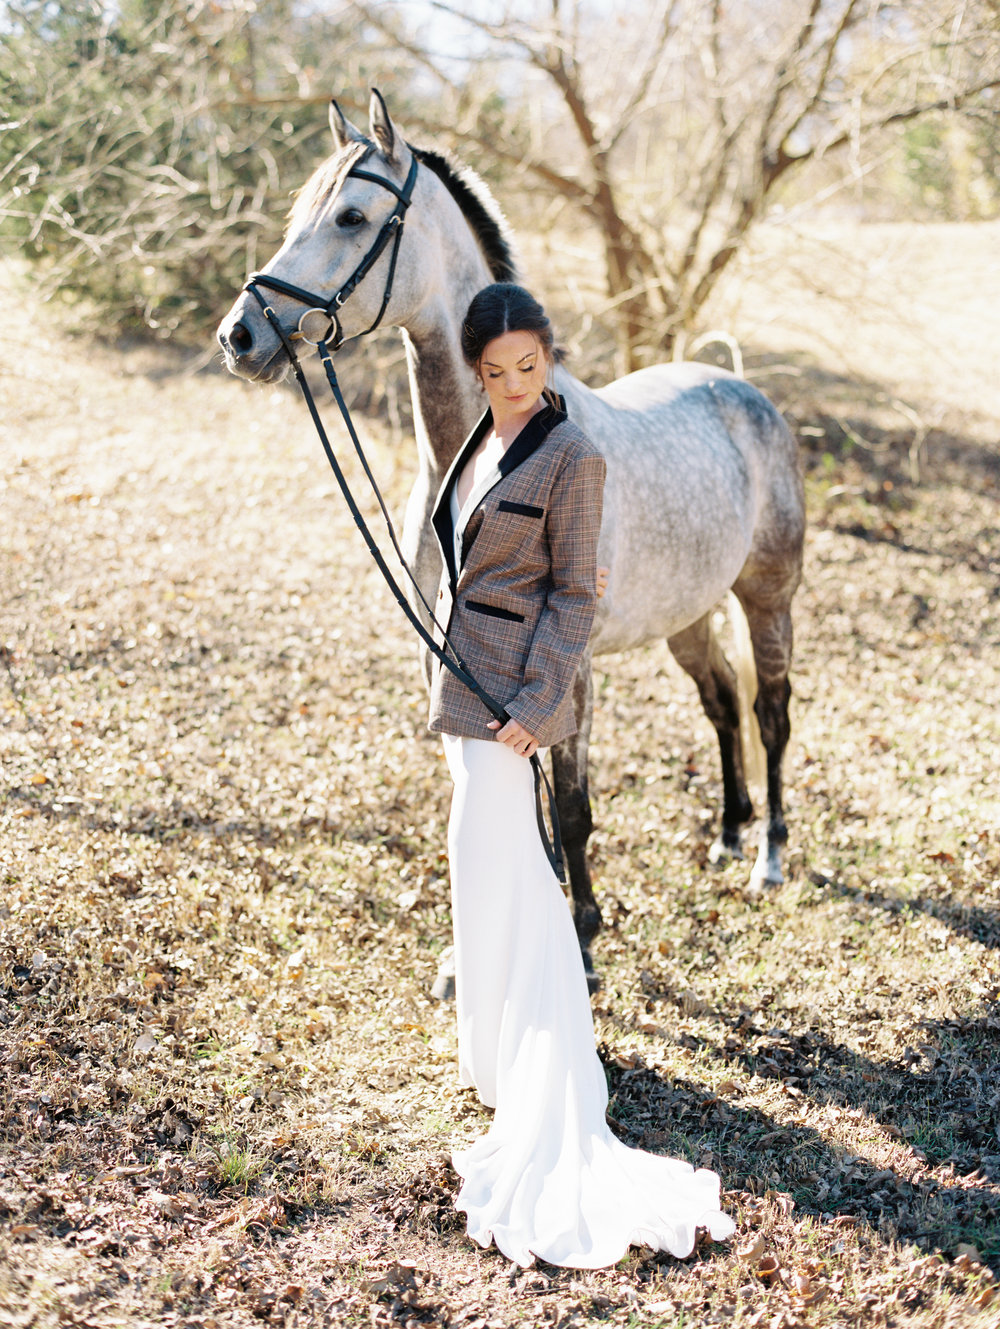 ralph-lauren-equestrian-styled-shoot-ar-photography-132.jpg